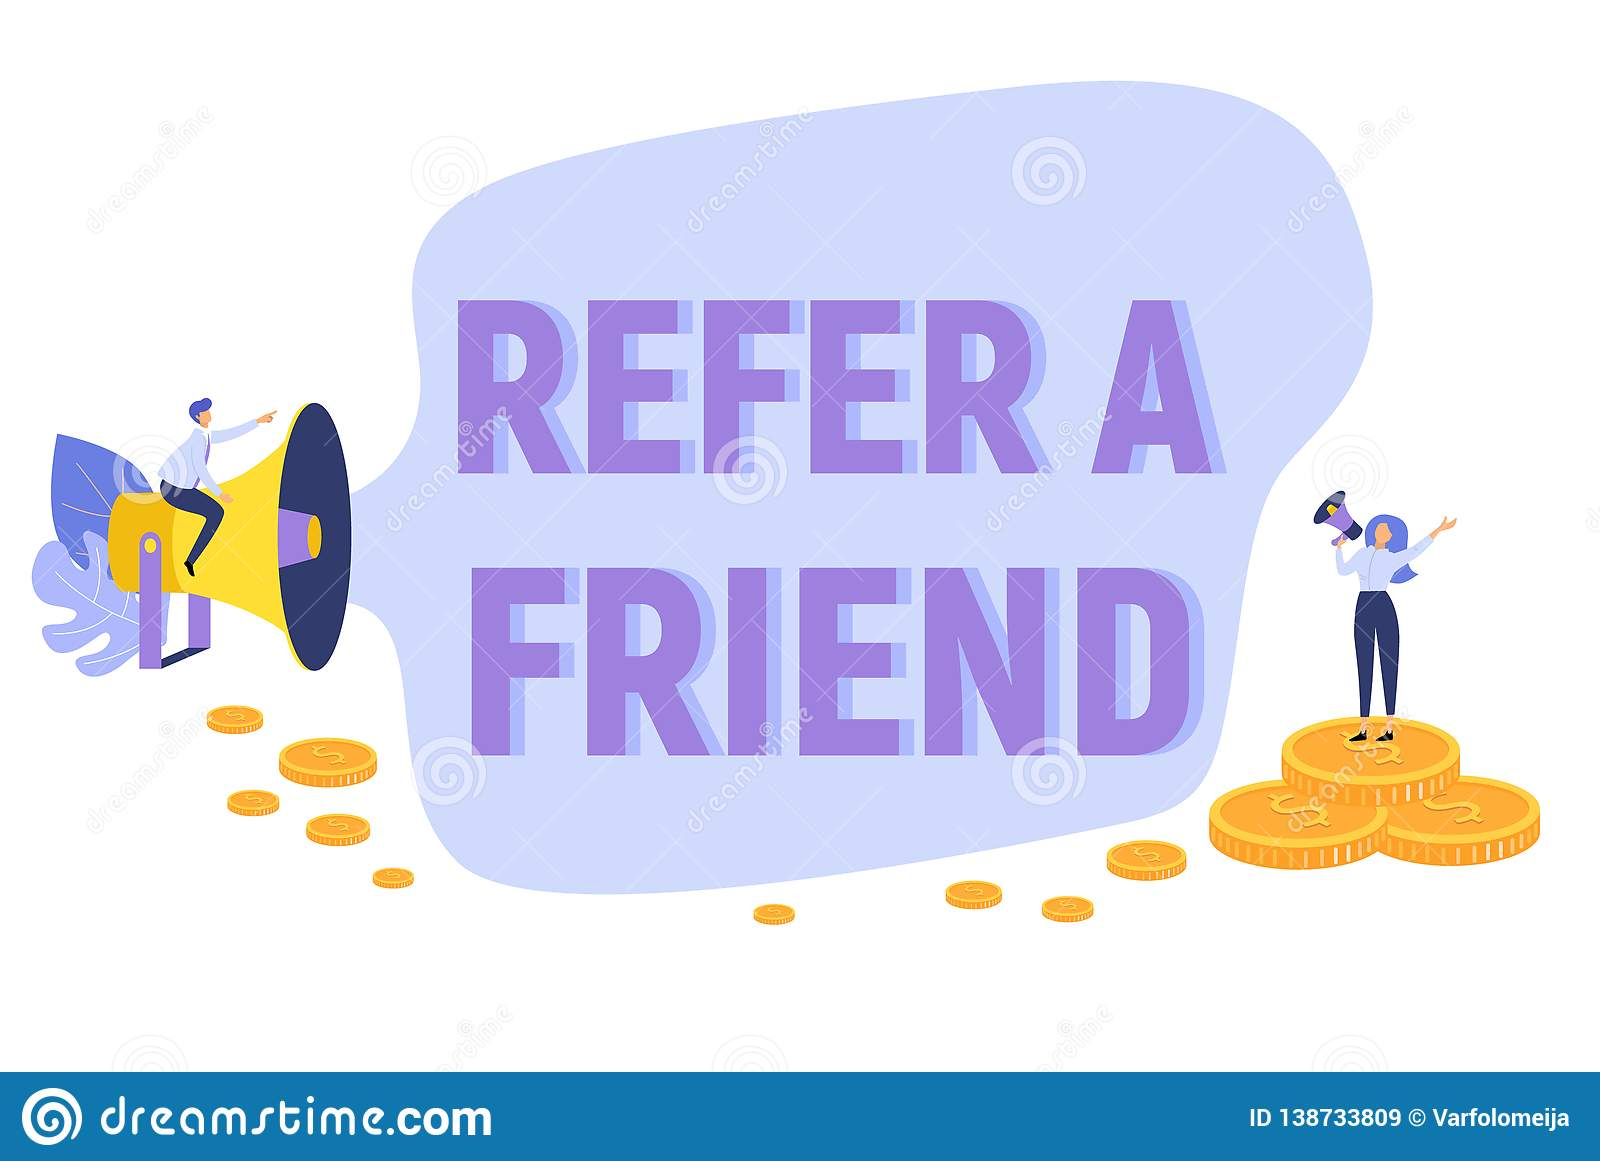 Refer A Friend Text Concept Background With People Shouting In